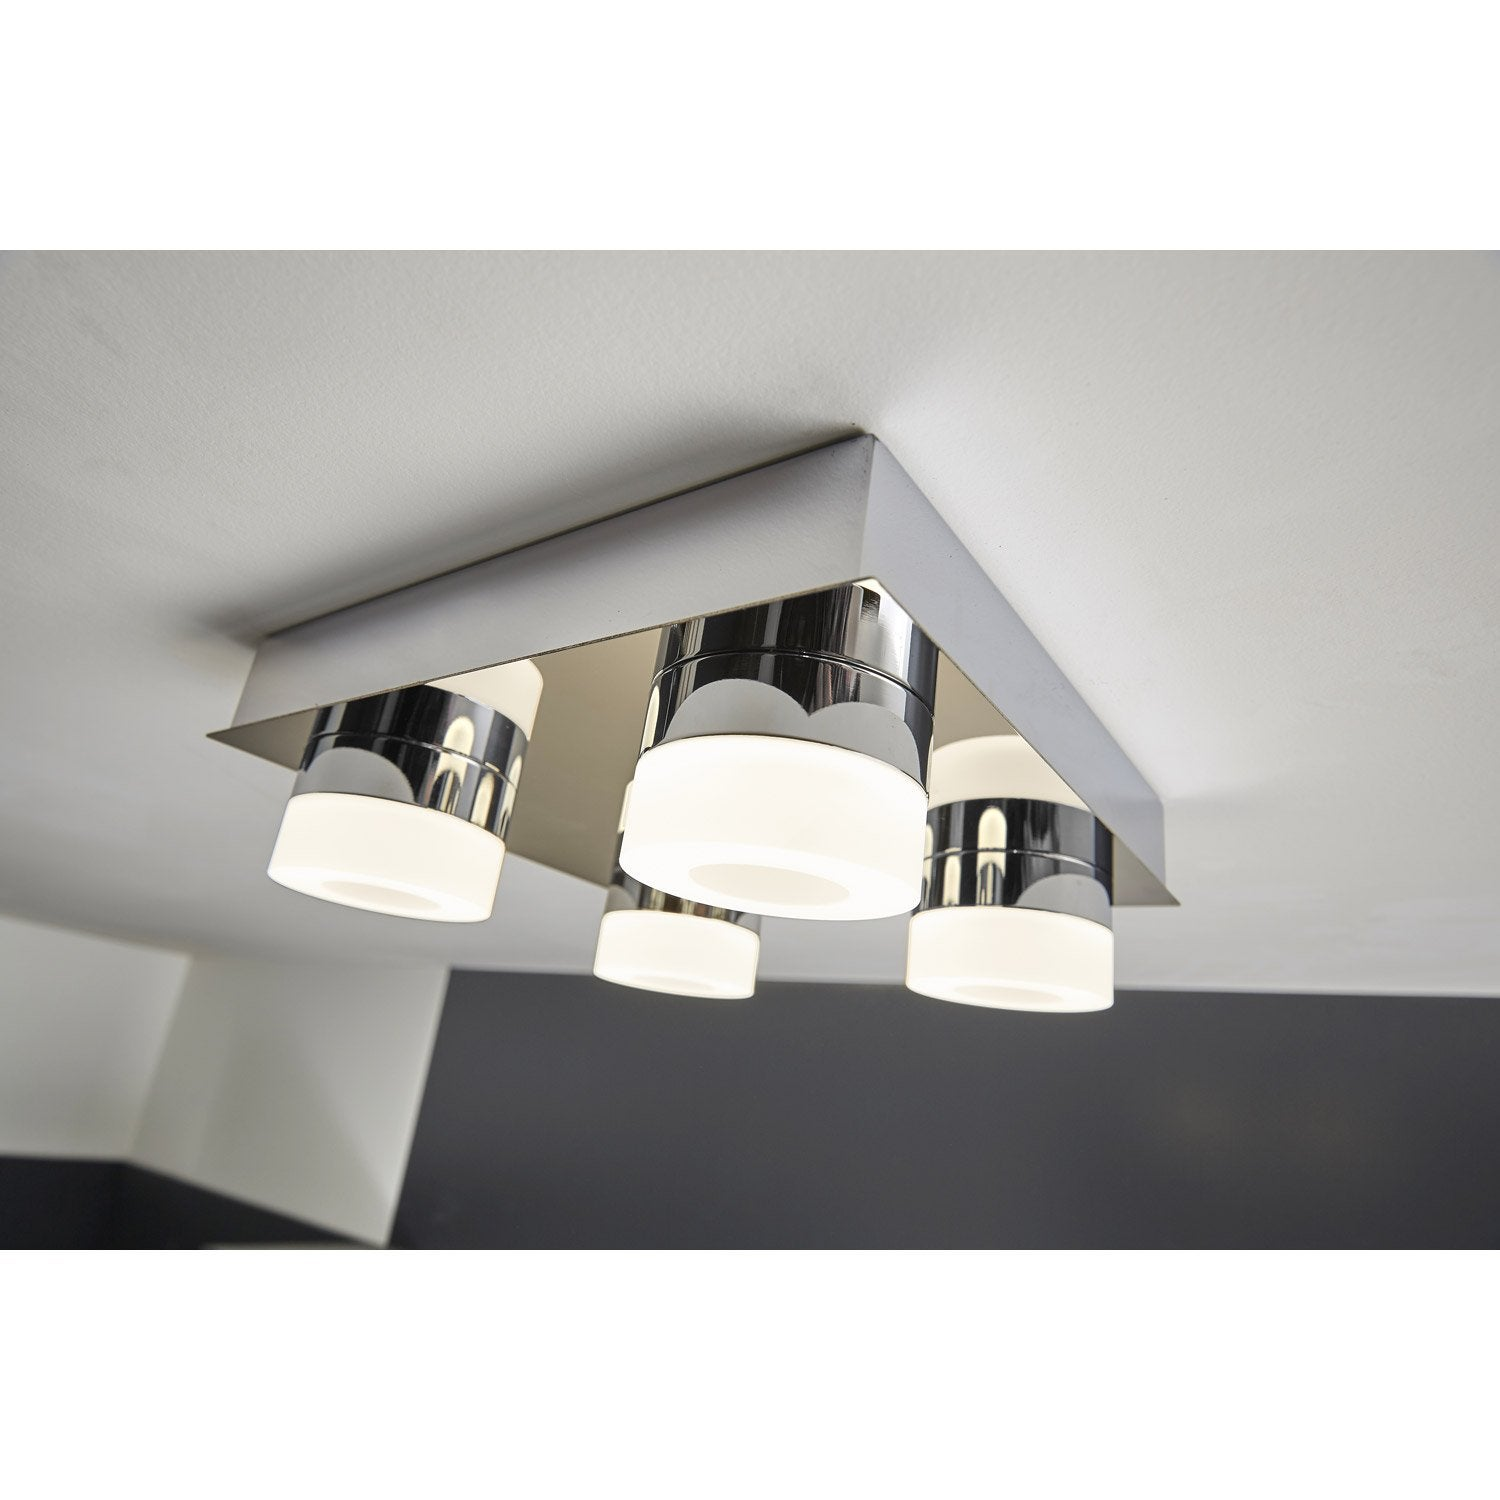 Plafonnier icaria led 4 x 3 5 w led int gr e blanc froid for Plafonnier pour salle a manger